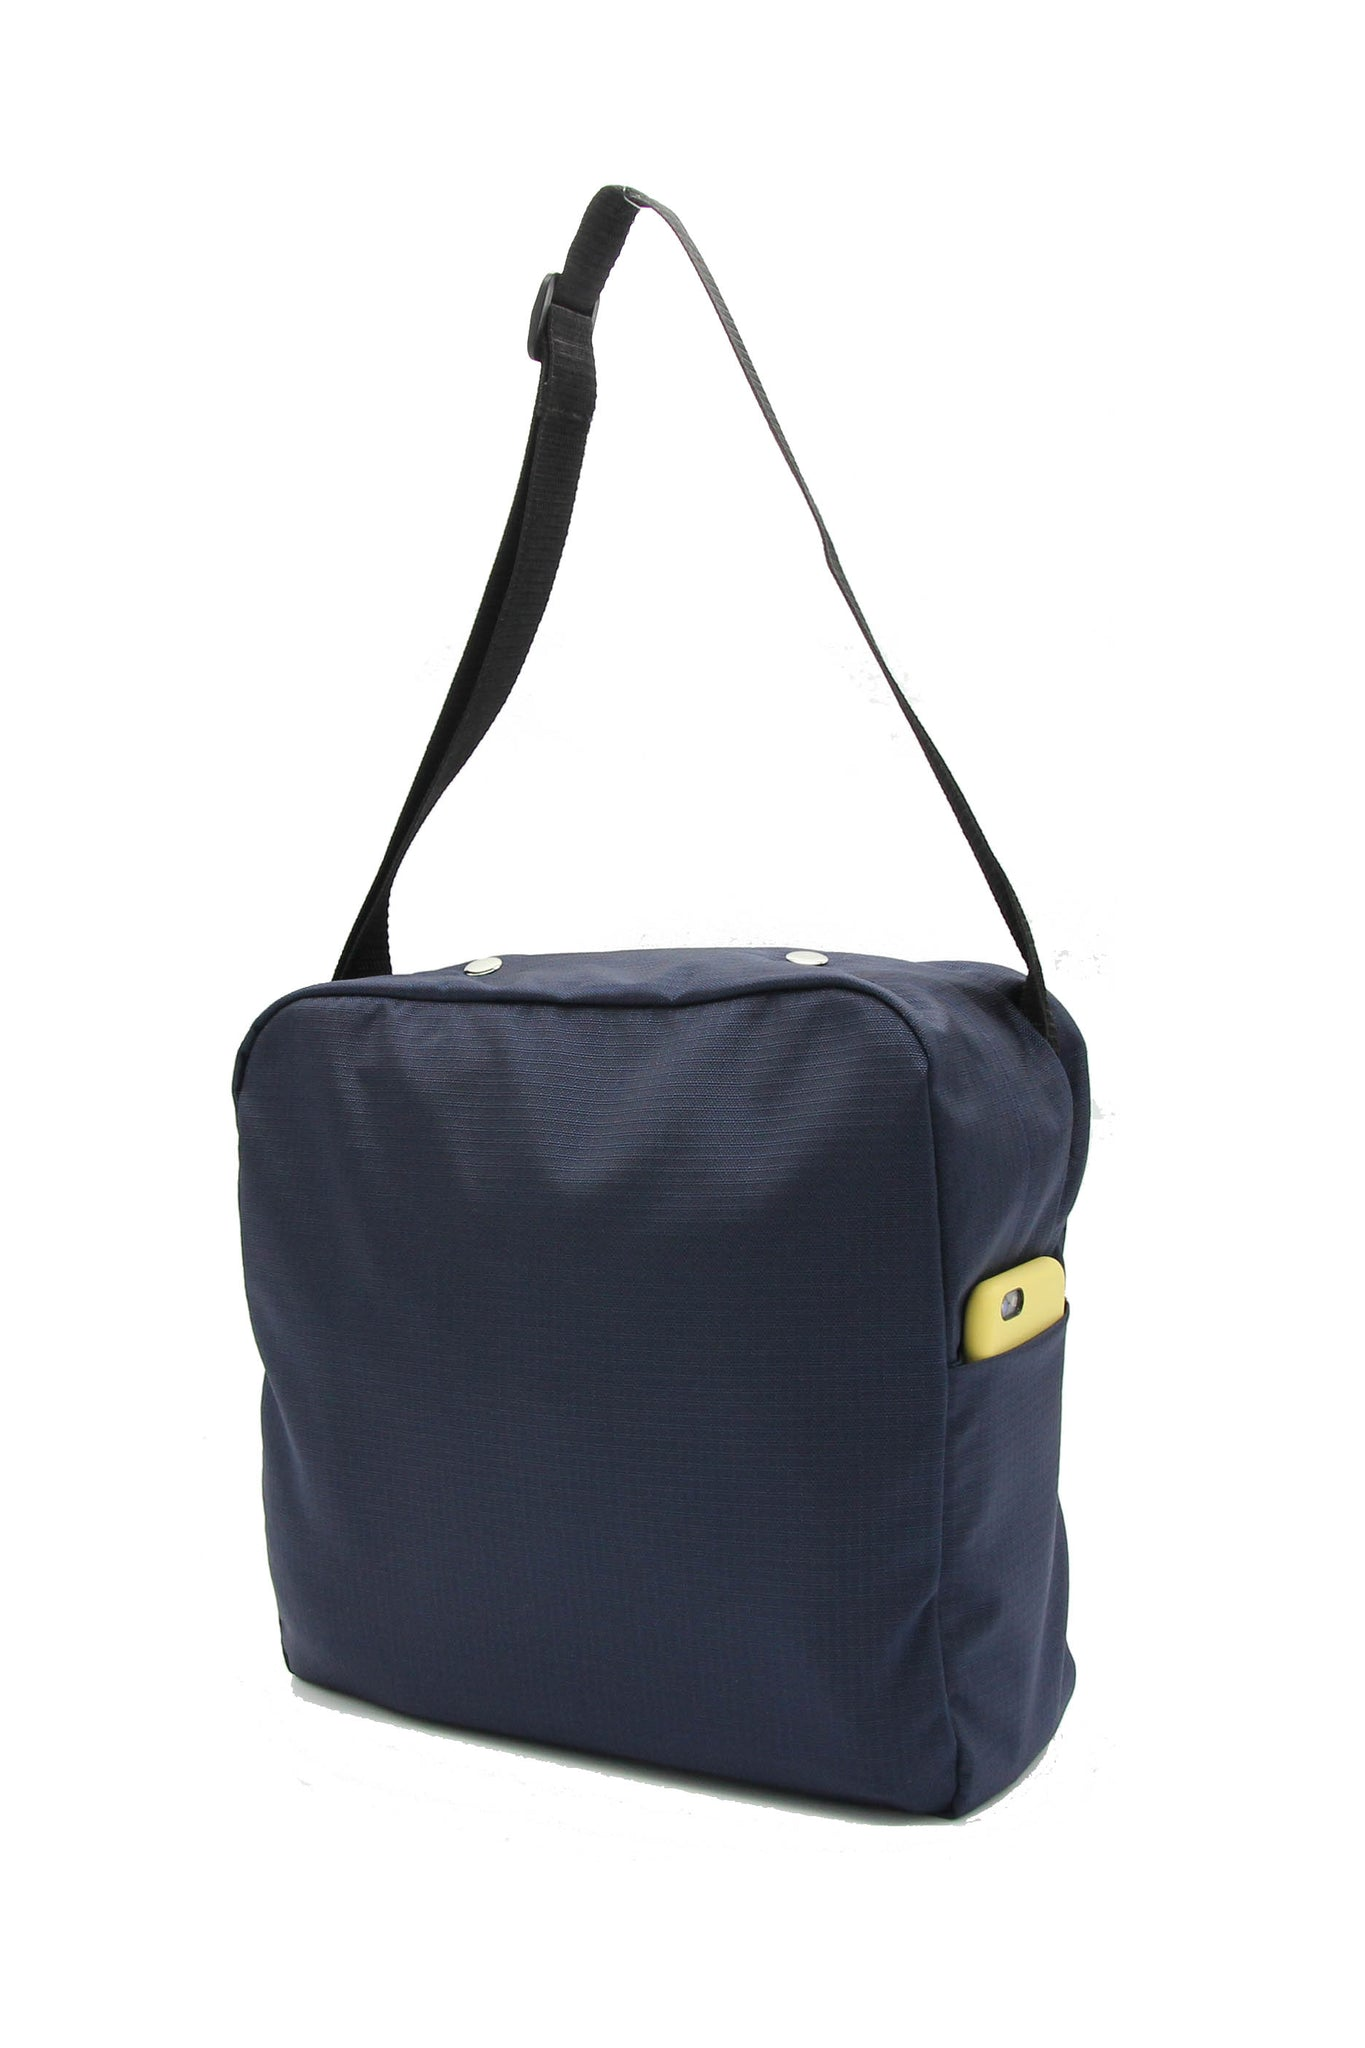 Clear messenger bag with blue nylon sleeve